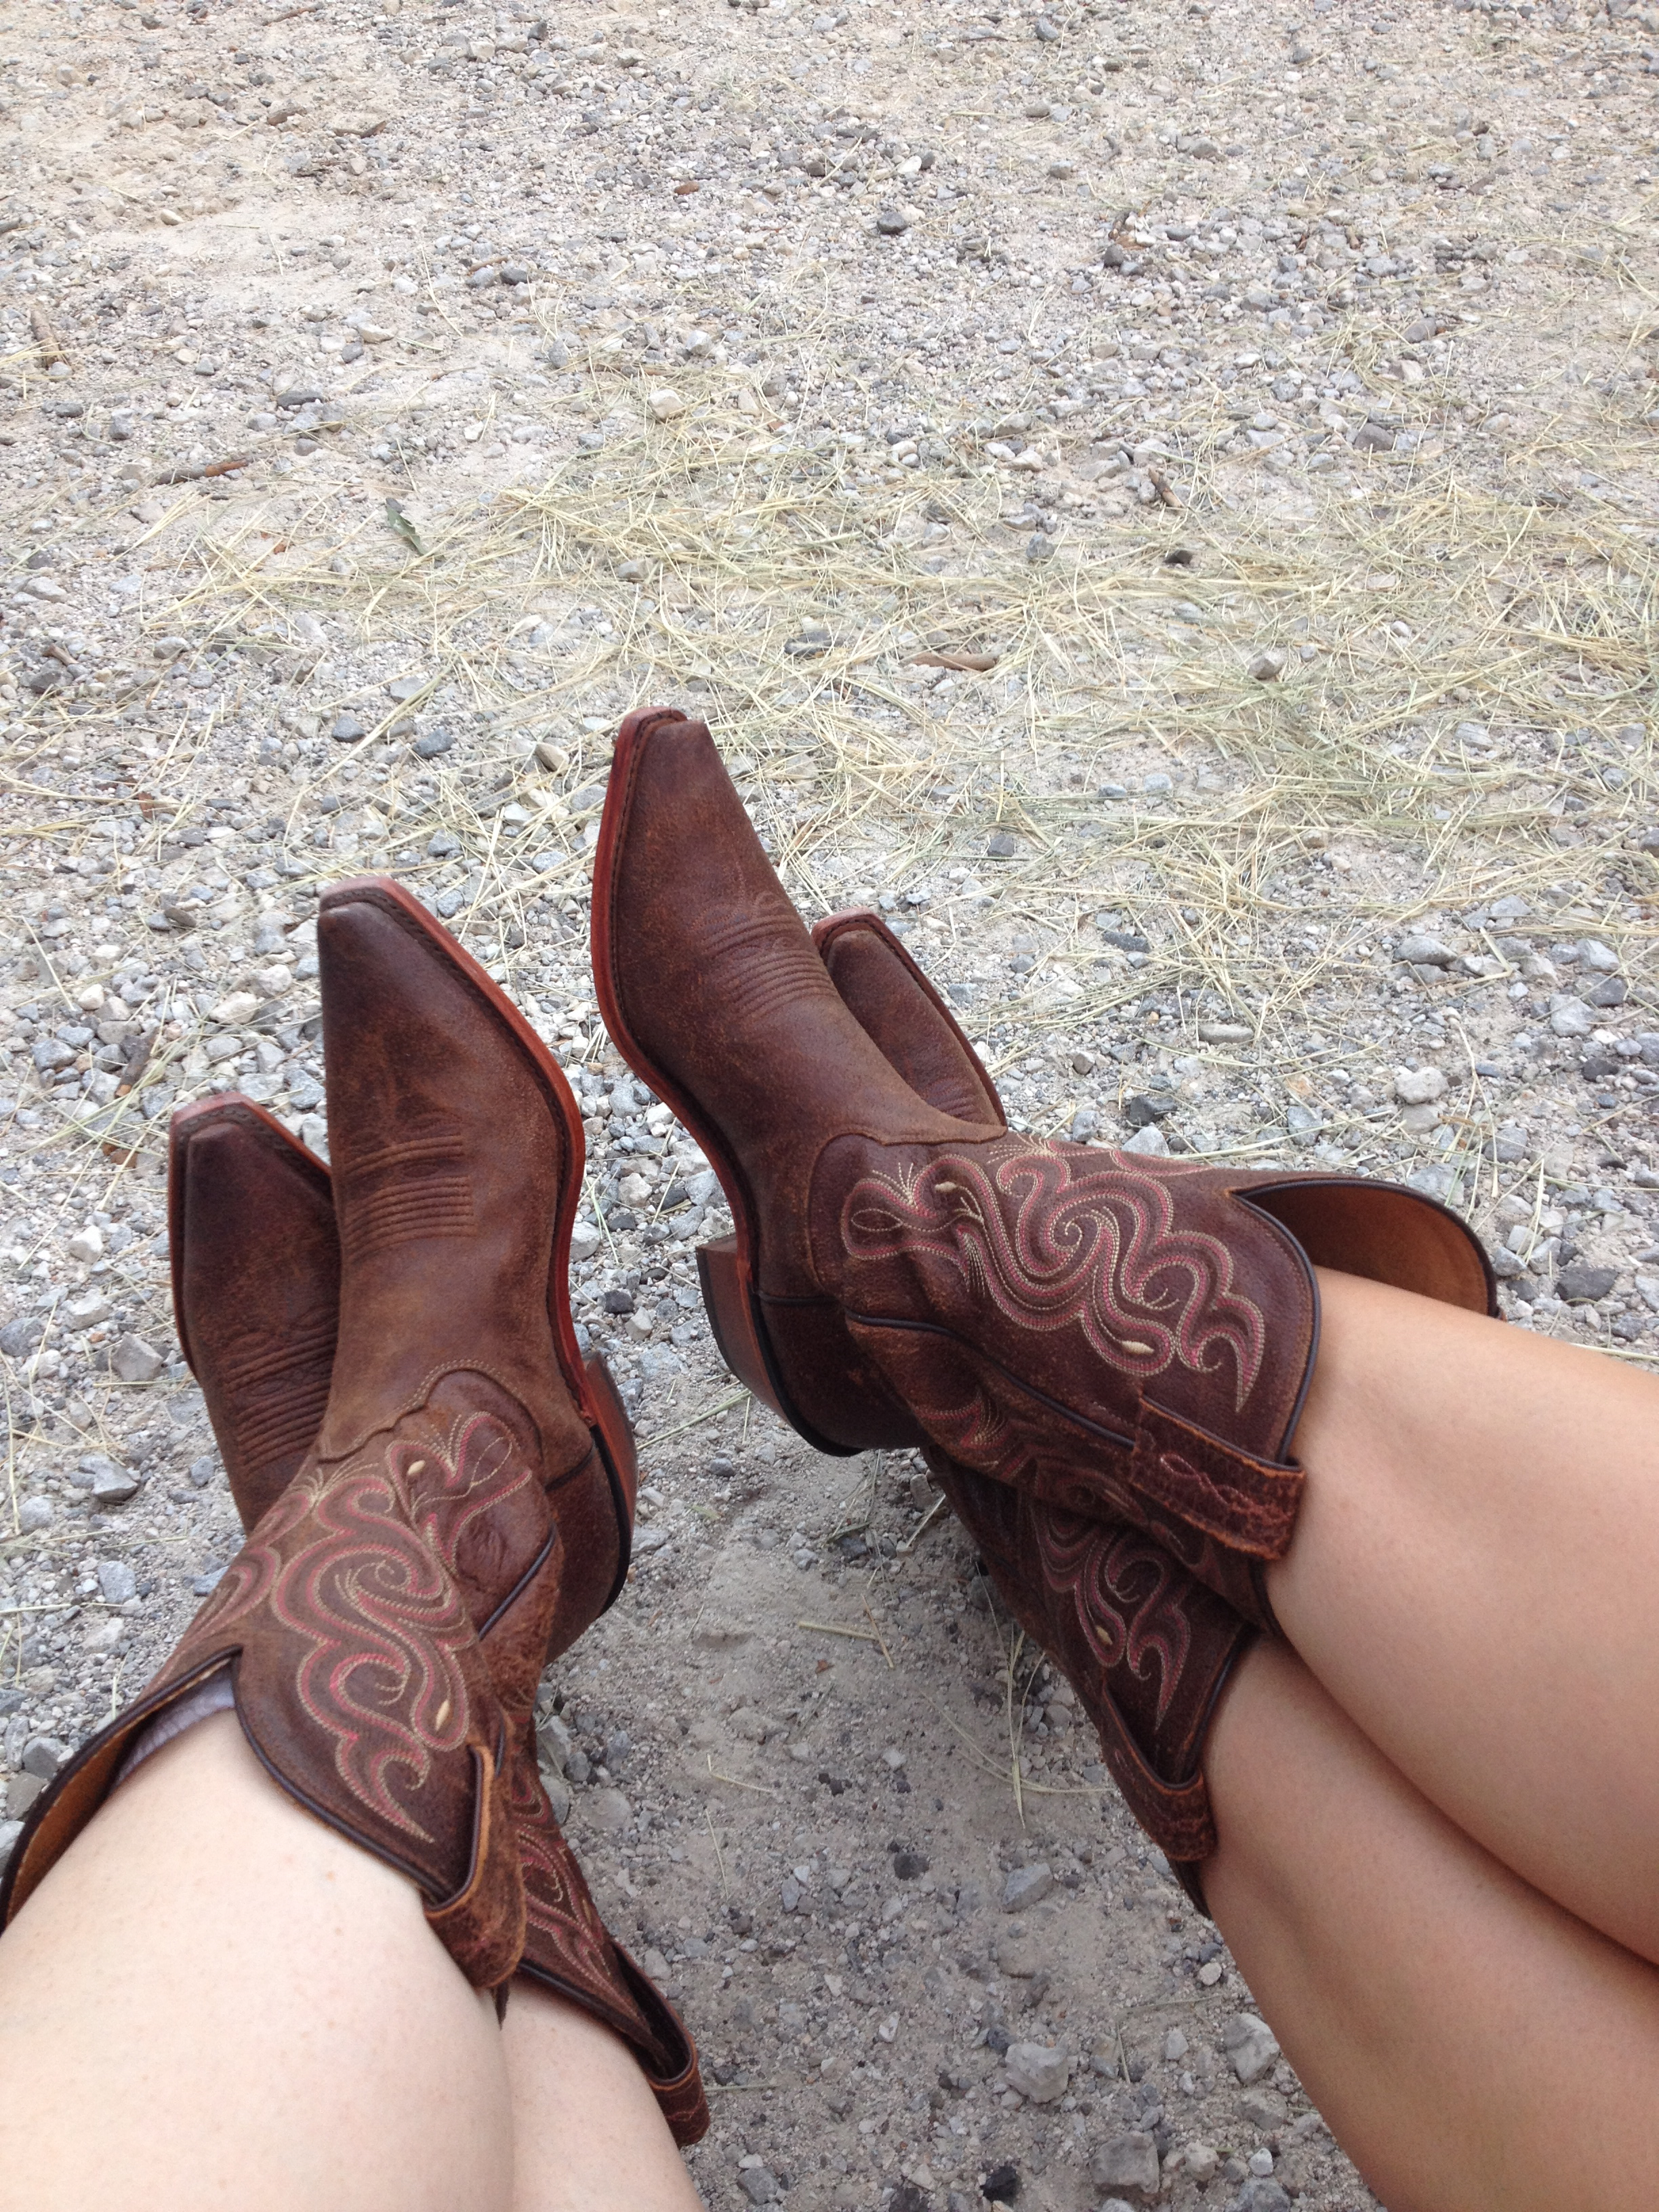 Boots from AWBU 12